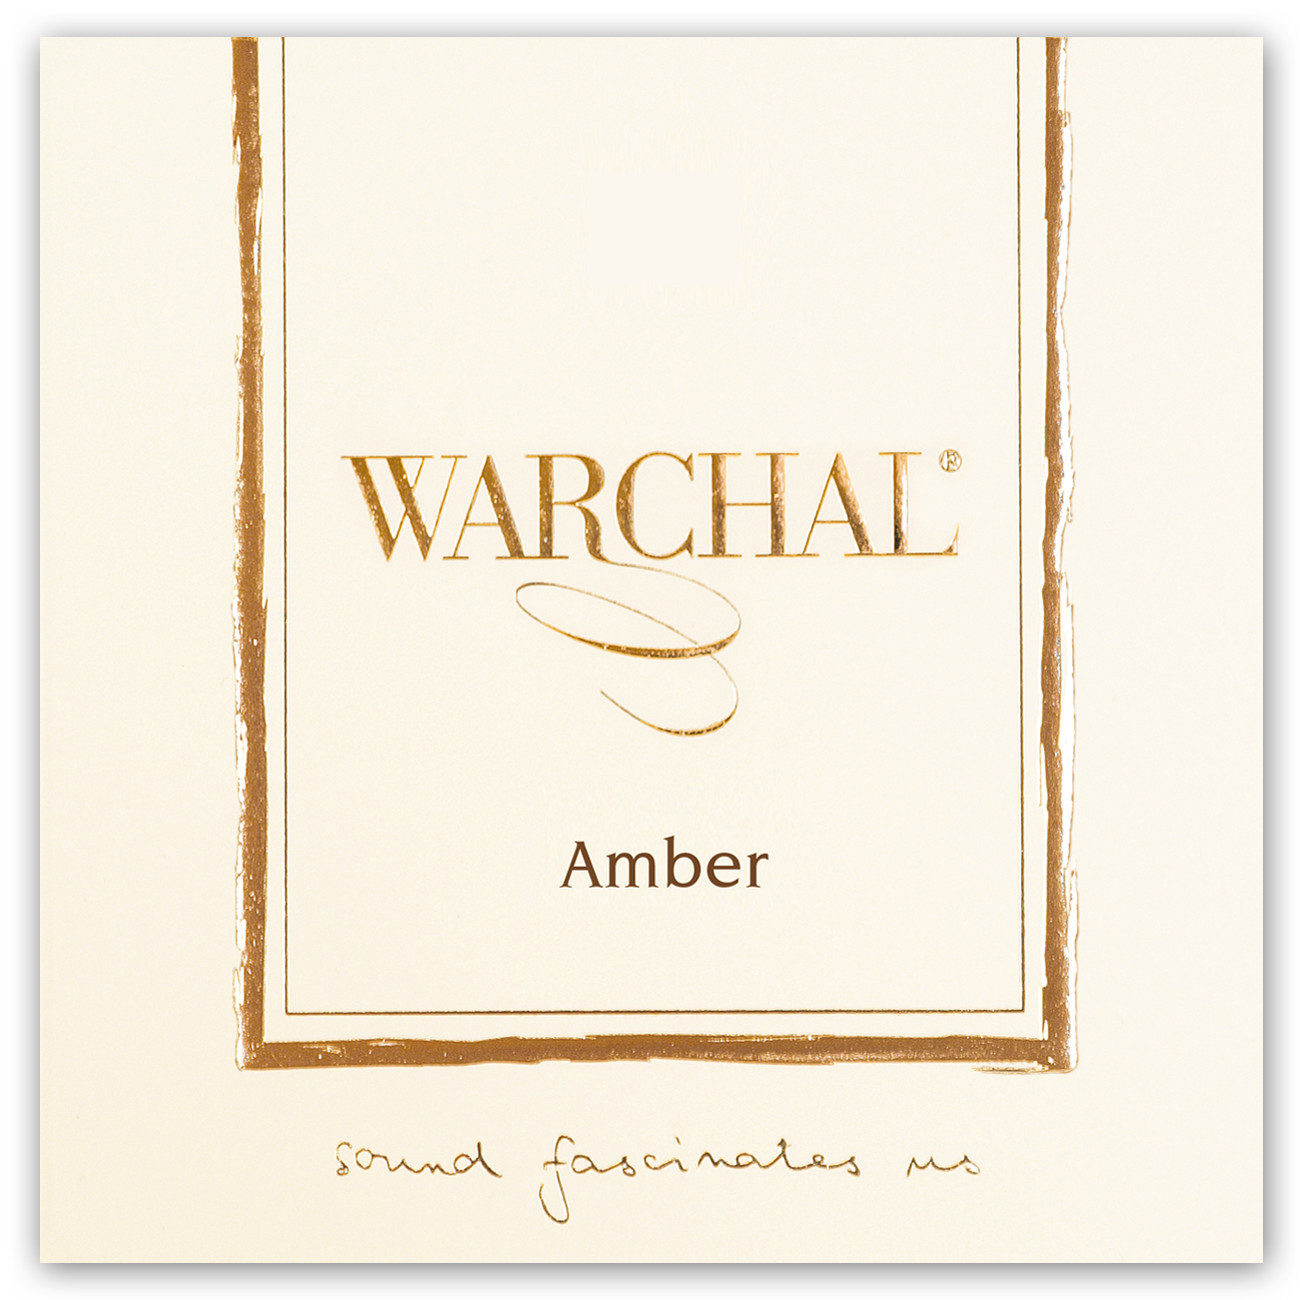 Warchal Amber Cello G